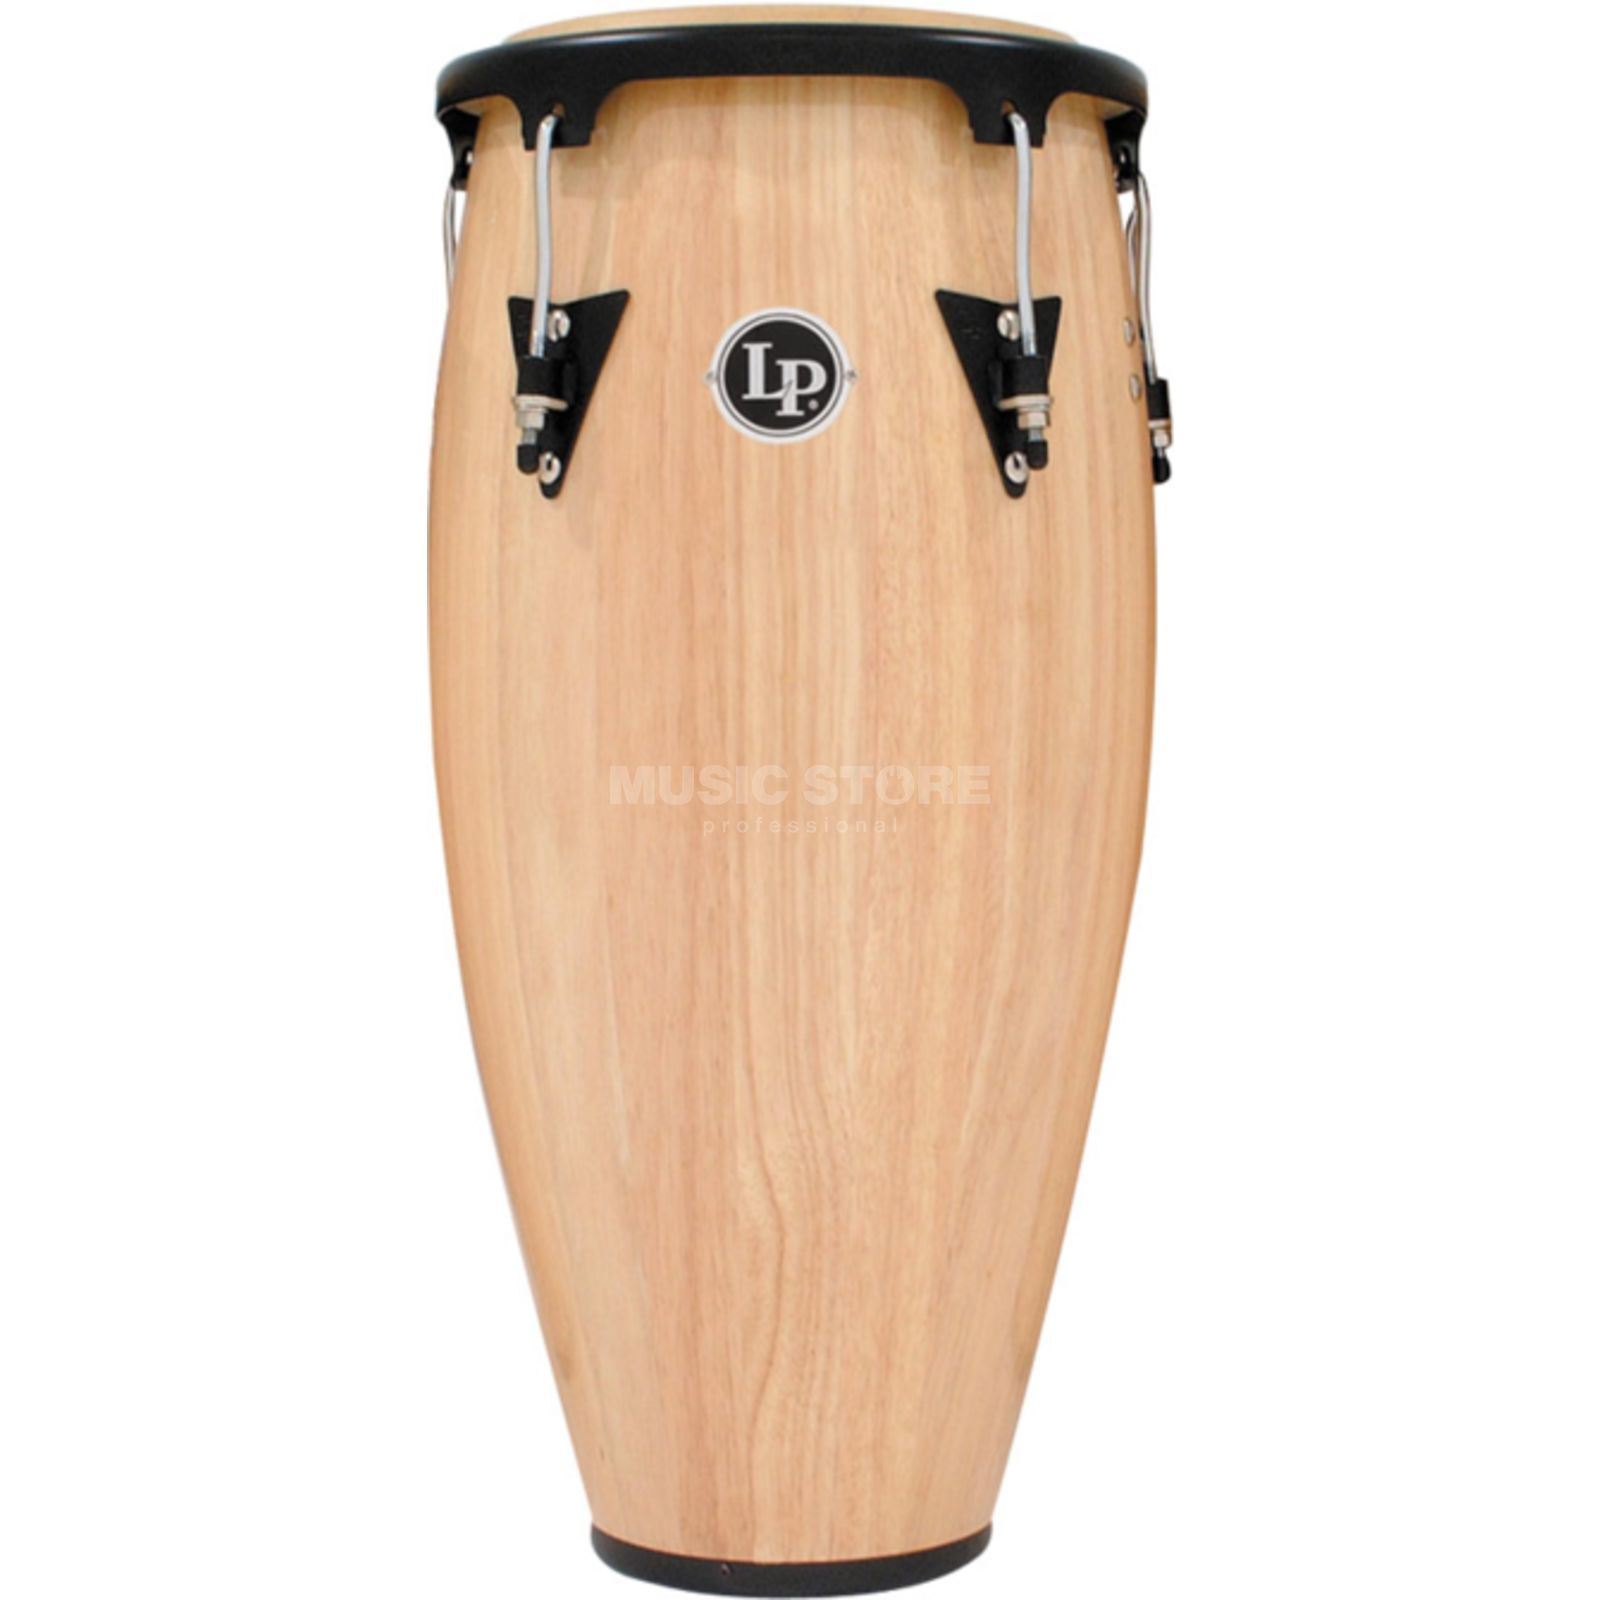 "Latin Percussion Aspire Conga LPA610-AW, 10"" Quinto, Natural Wood #AW Produktbild"